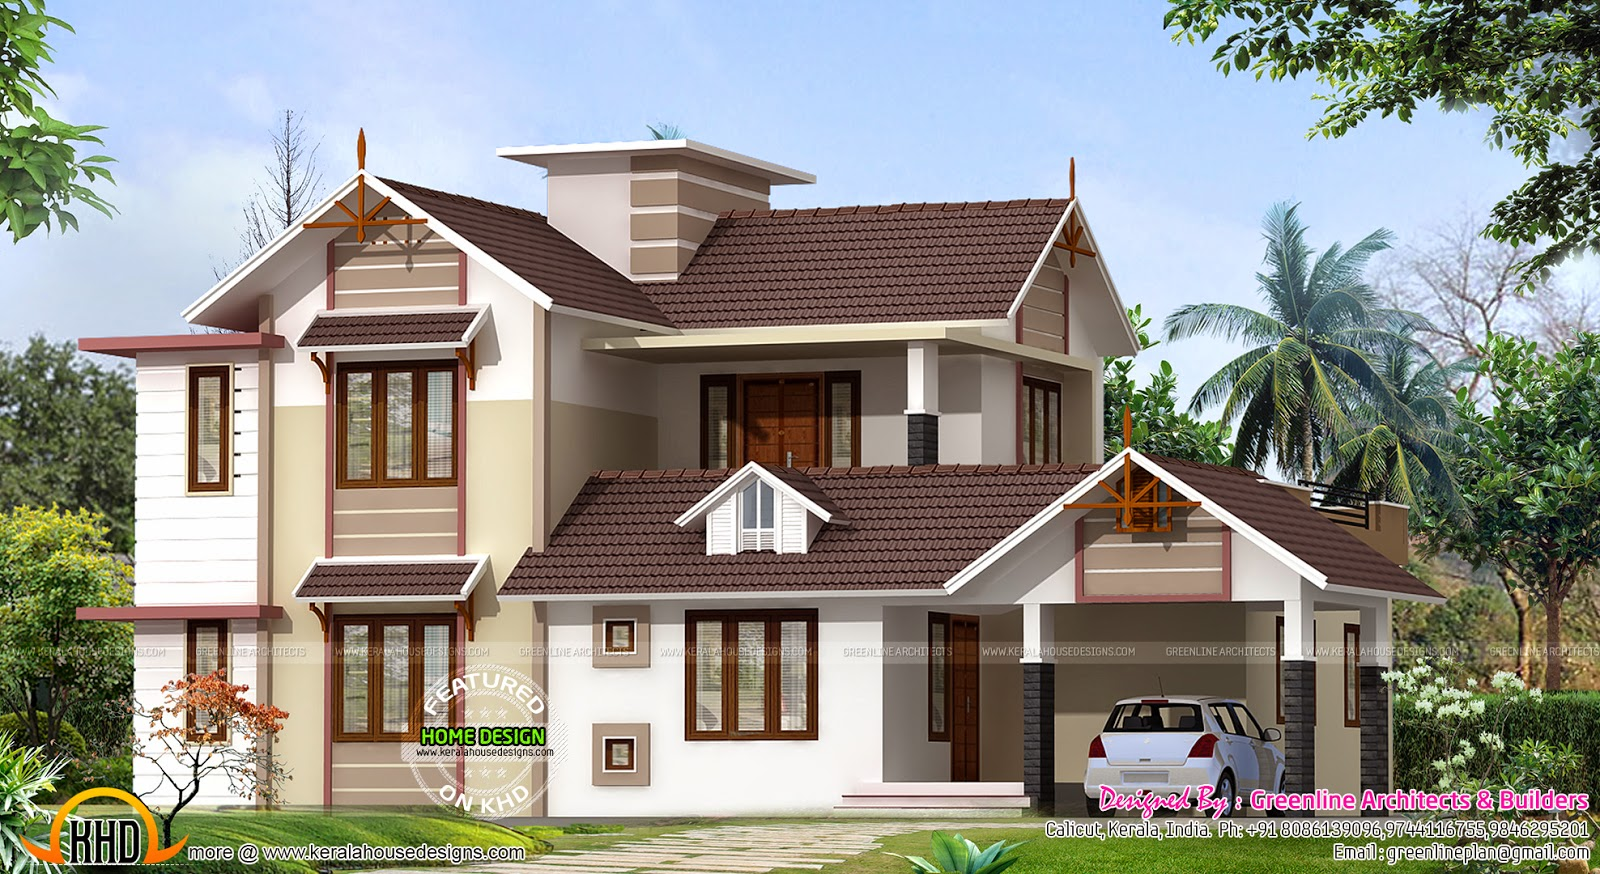 2400 sq ft new house design kerala home design and floor for Latest house design images